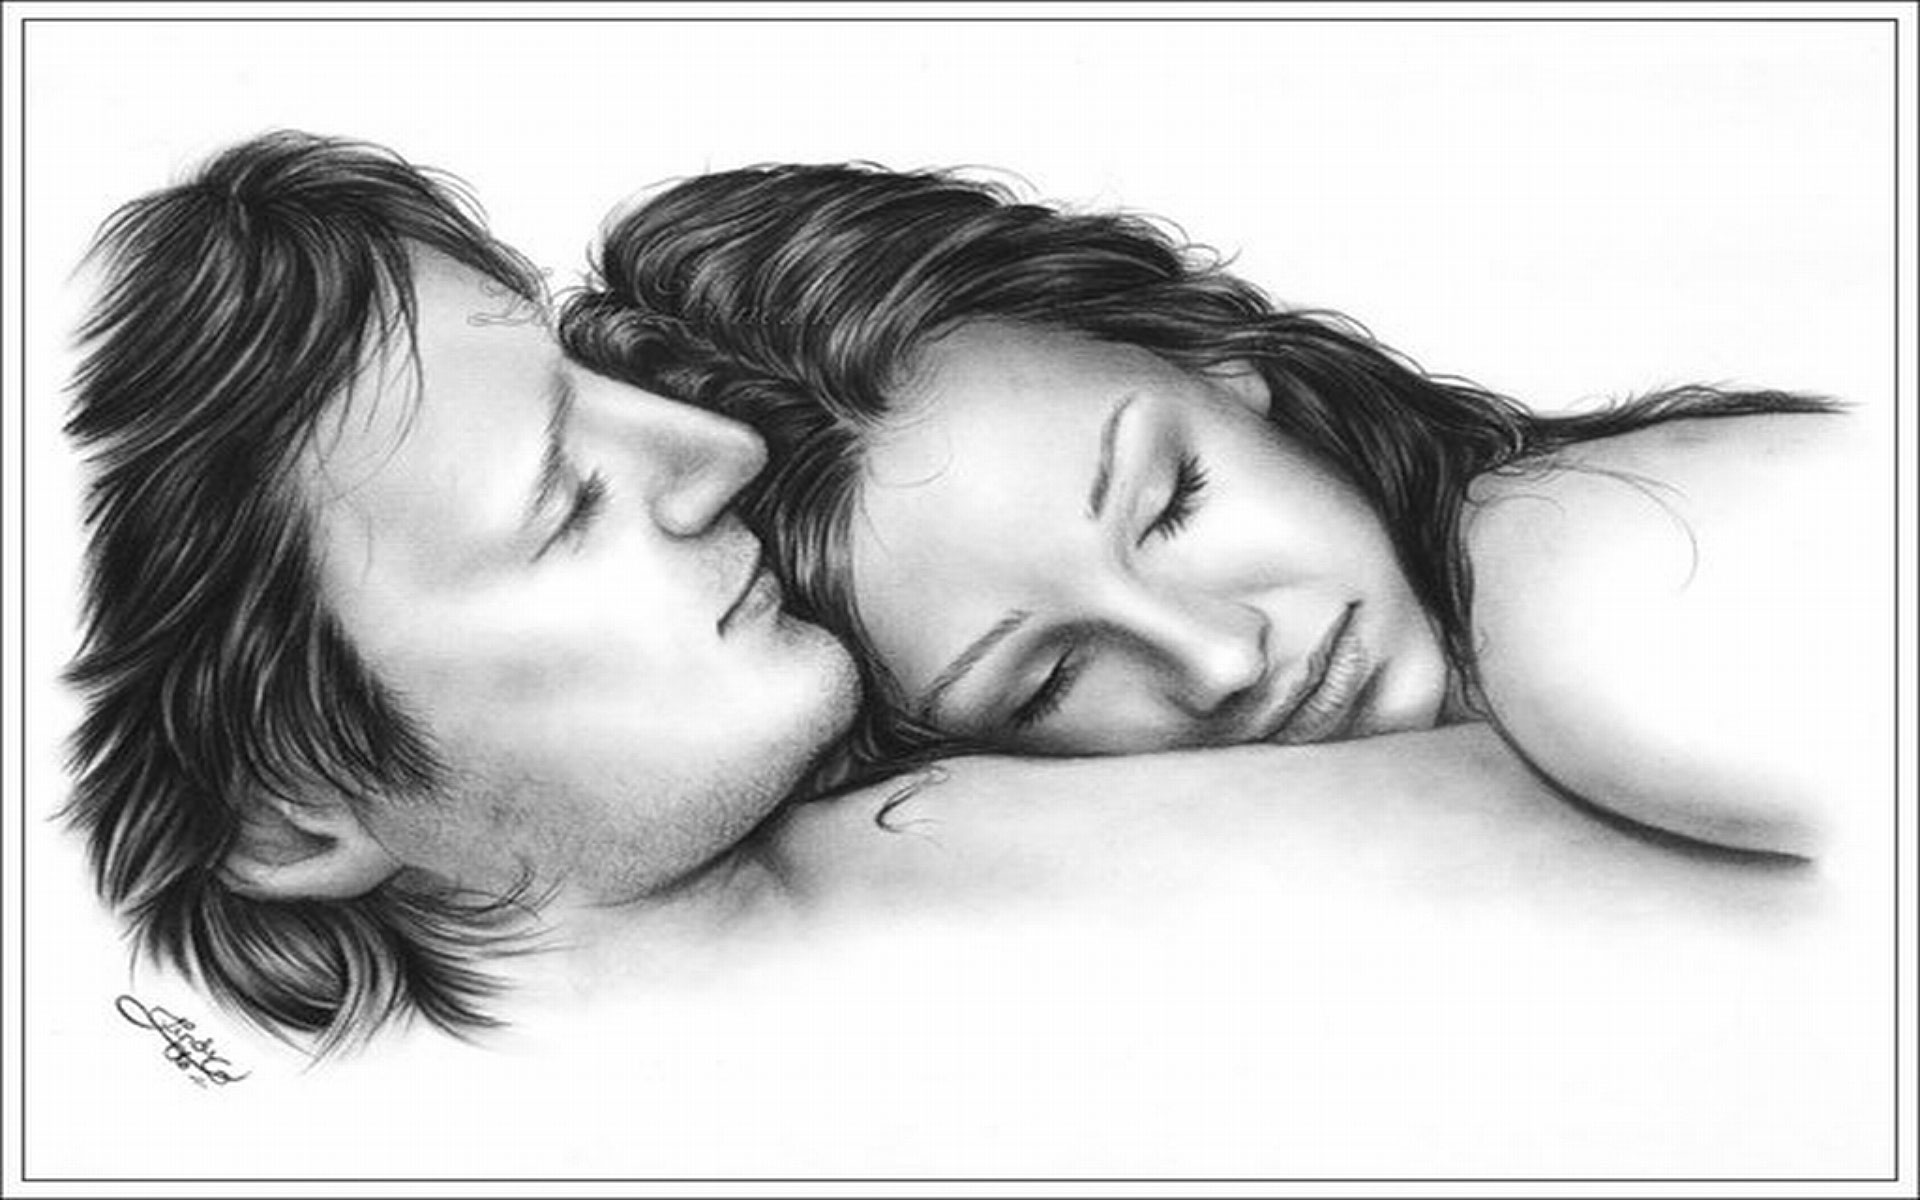 Her pencil drawing girl and boy romance